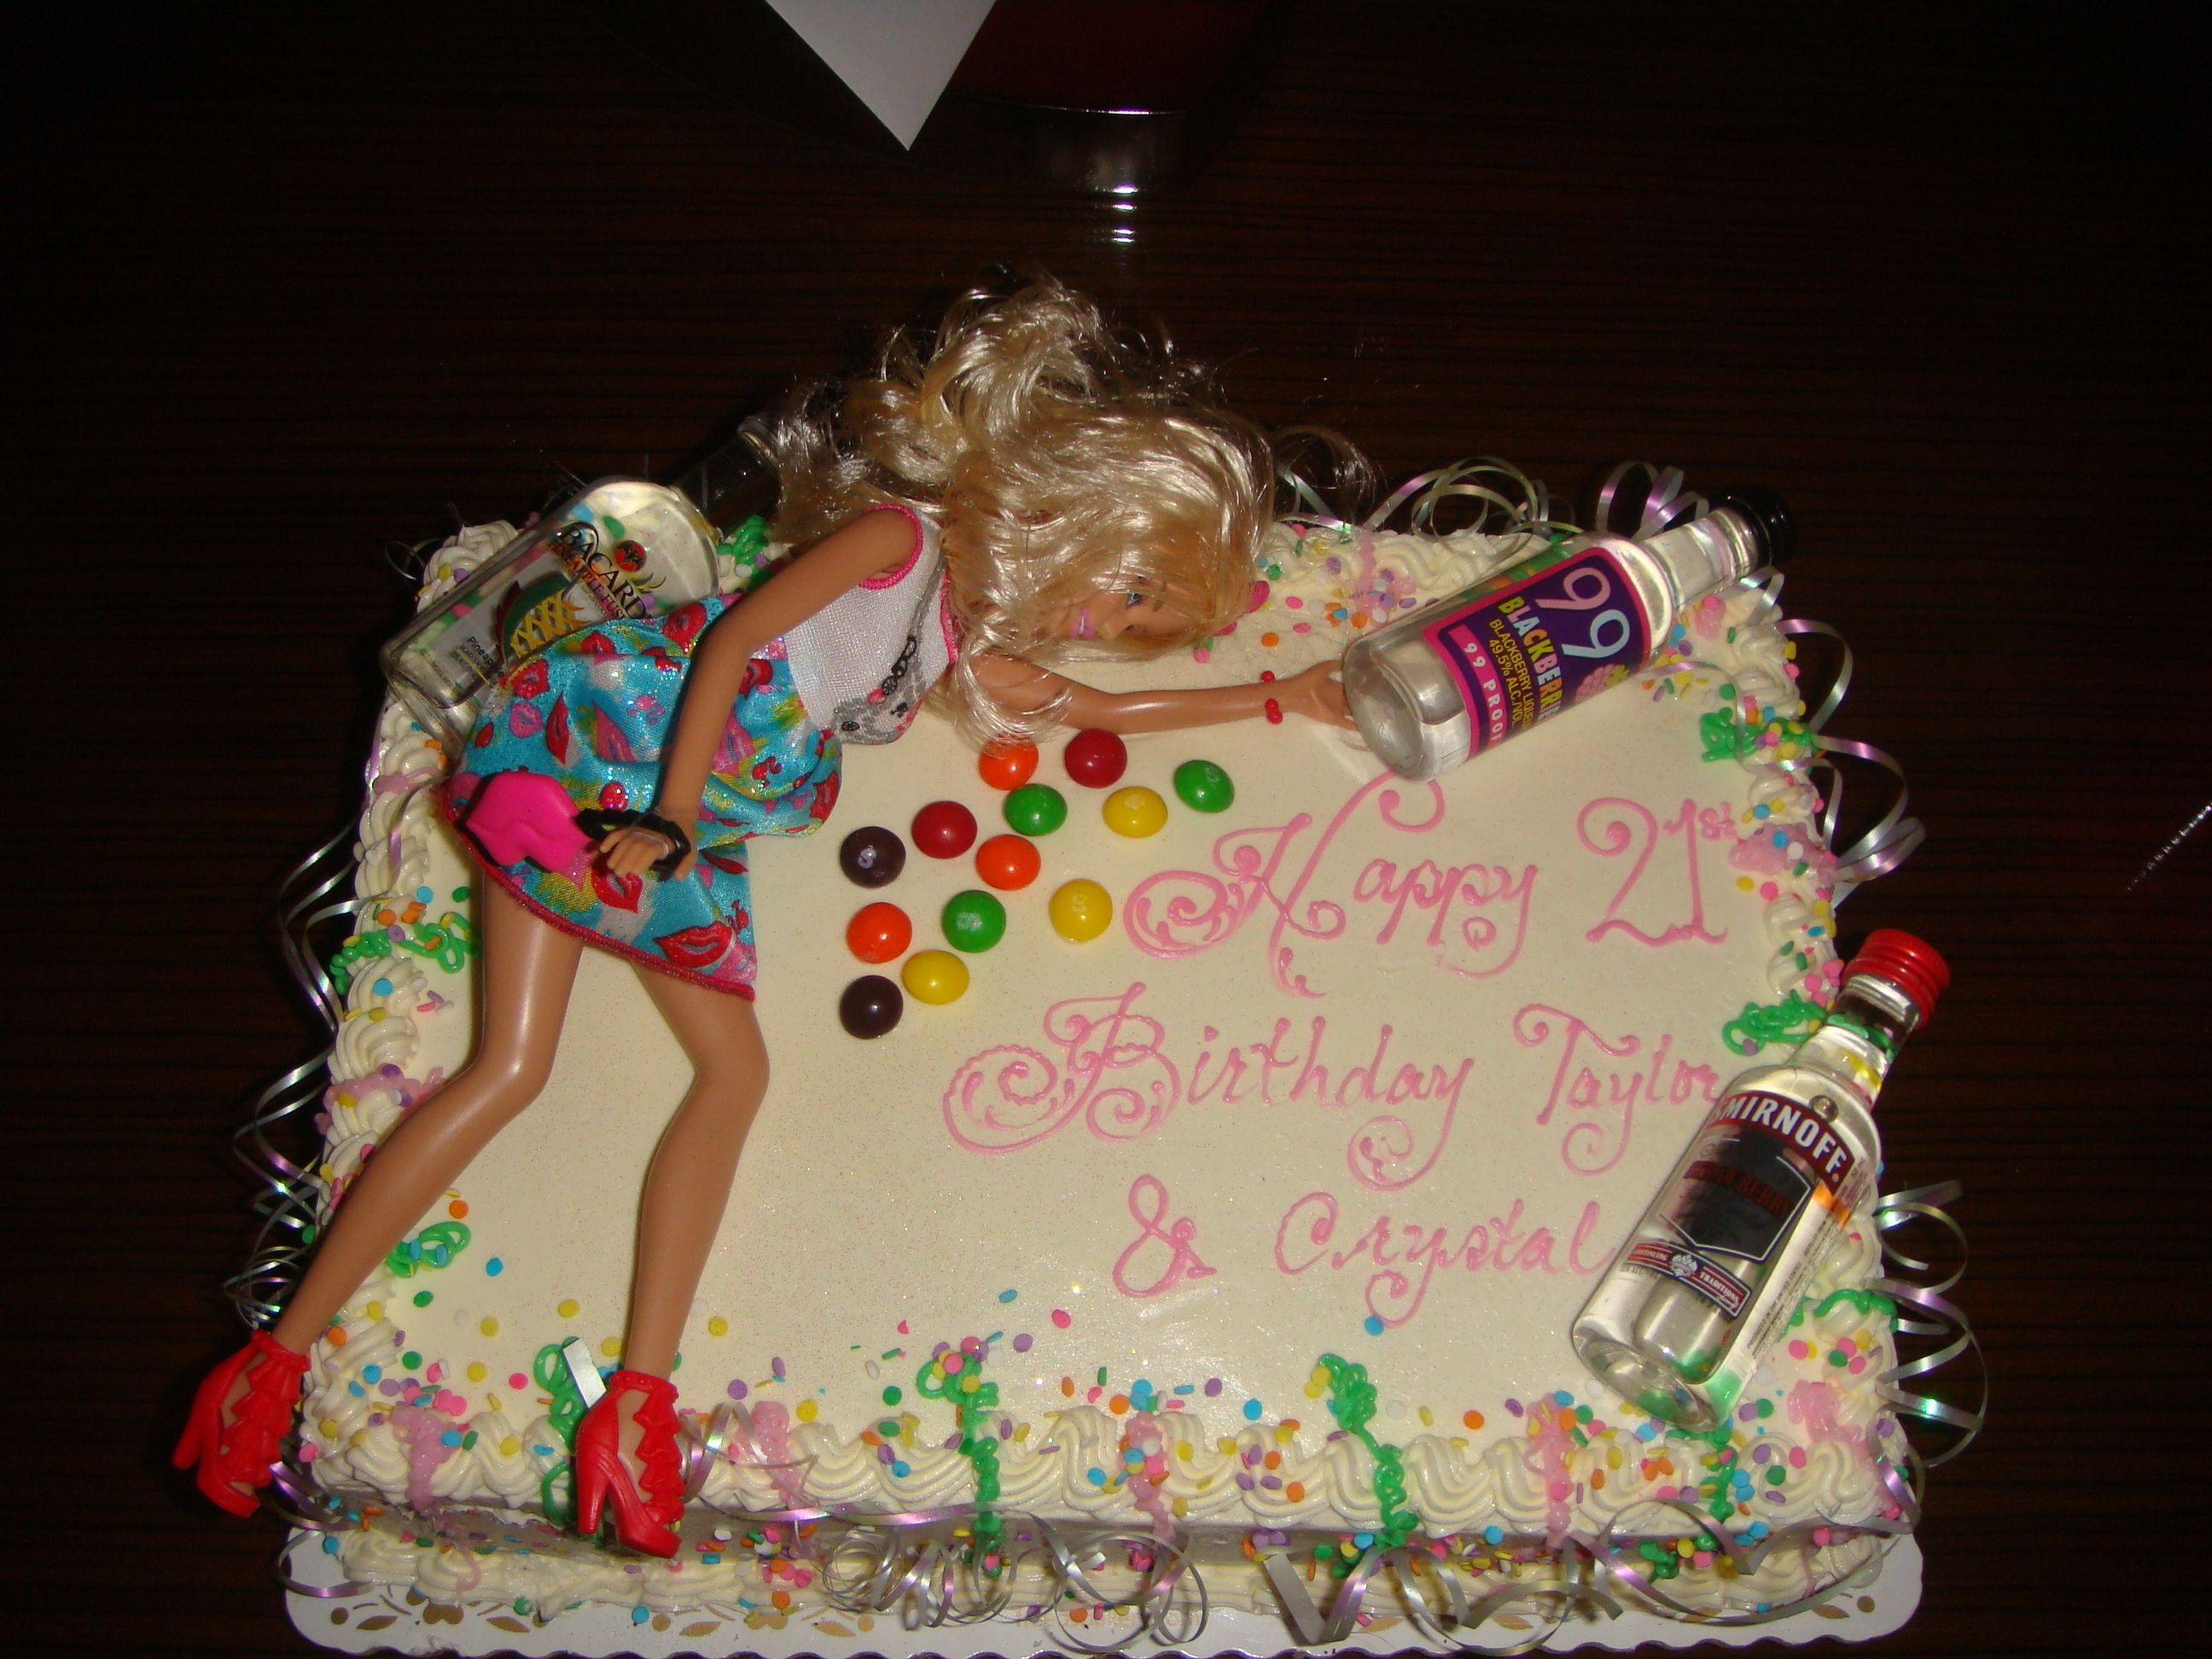 Cake Decoration For 21st Birthday : drunk Barbie 21st birthday cake! funny Pinterest ...